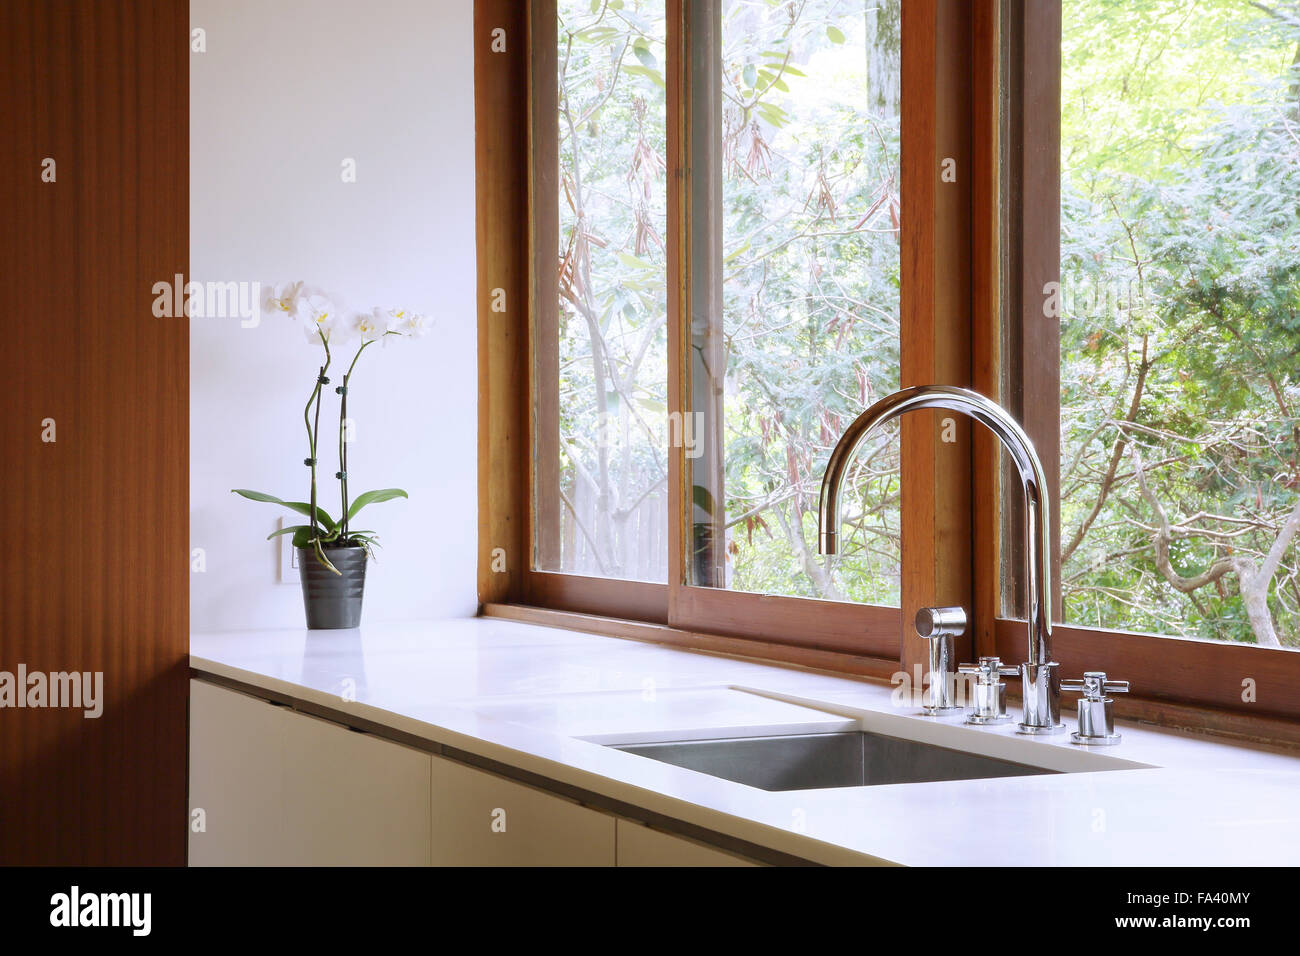 Detail of kitchen sink, counter and window. Hudson Valley Private ...